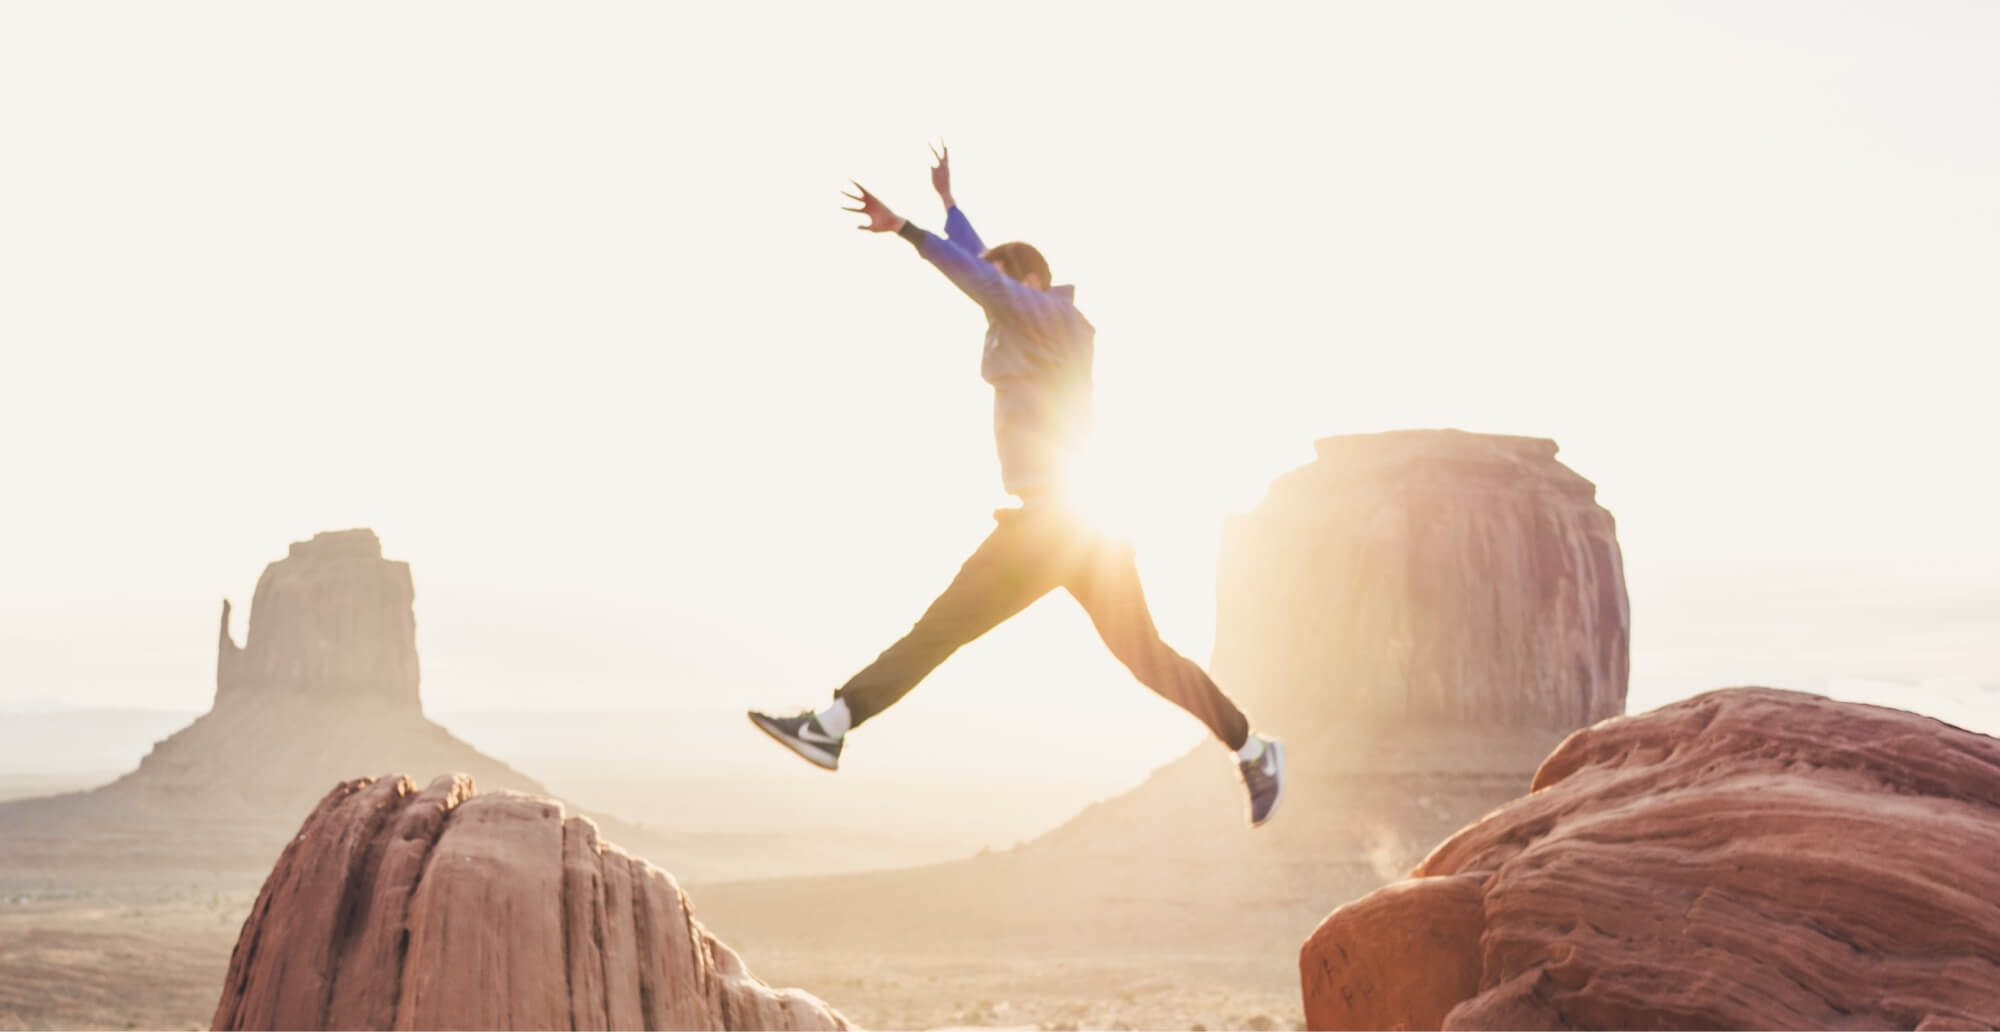 Man Jumping In the Air In Front Of Dessert Mountains On A Sunny Day